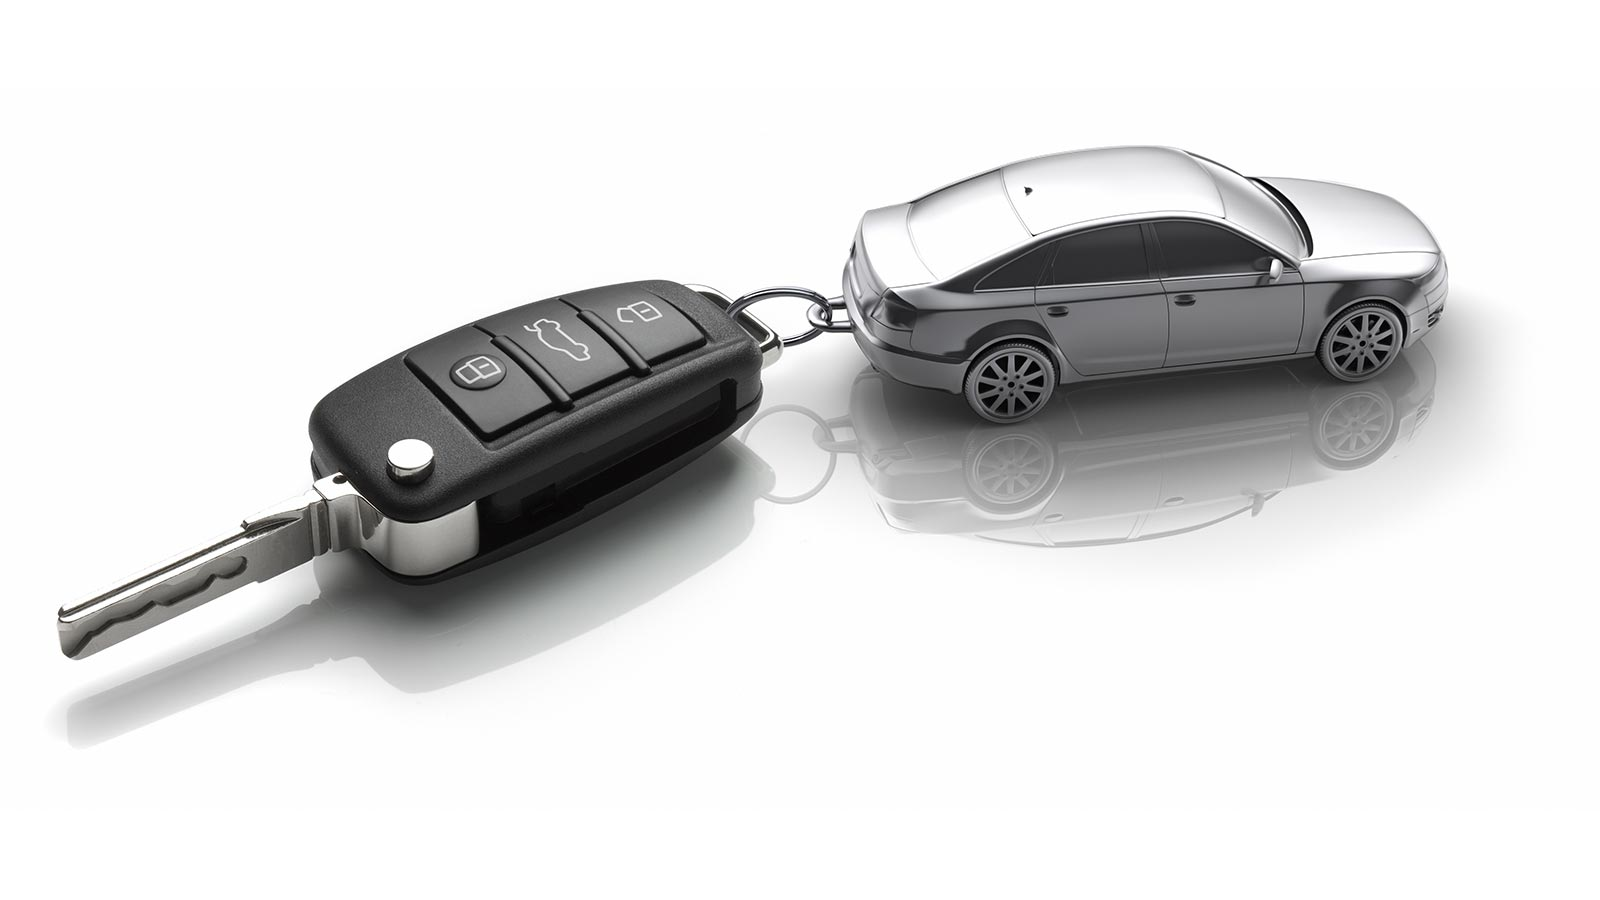 Atlas helps auto dealers identify risks and protect against business disruptions